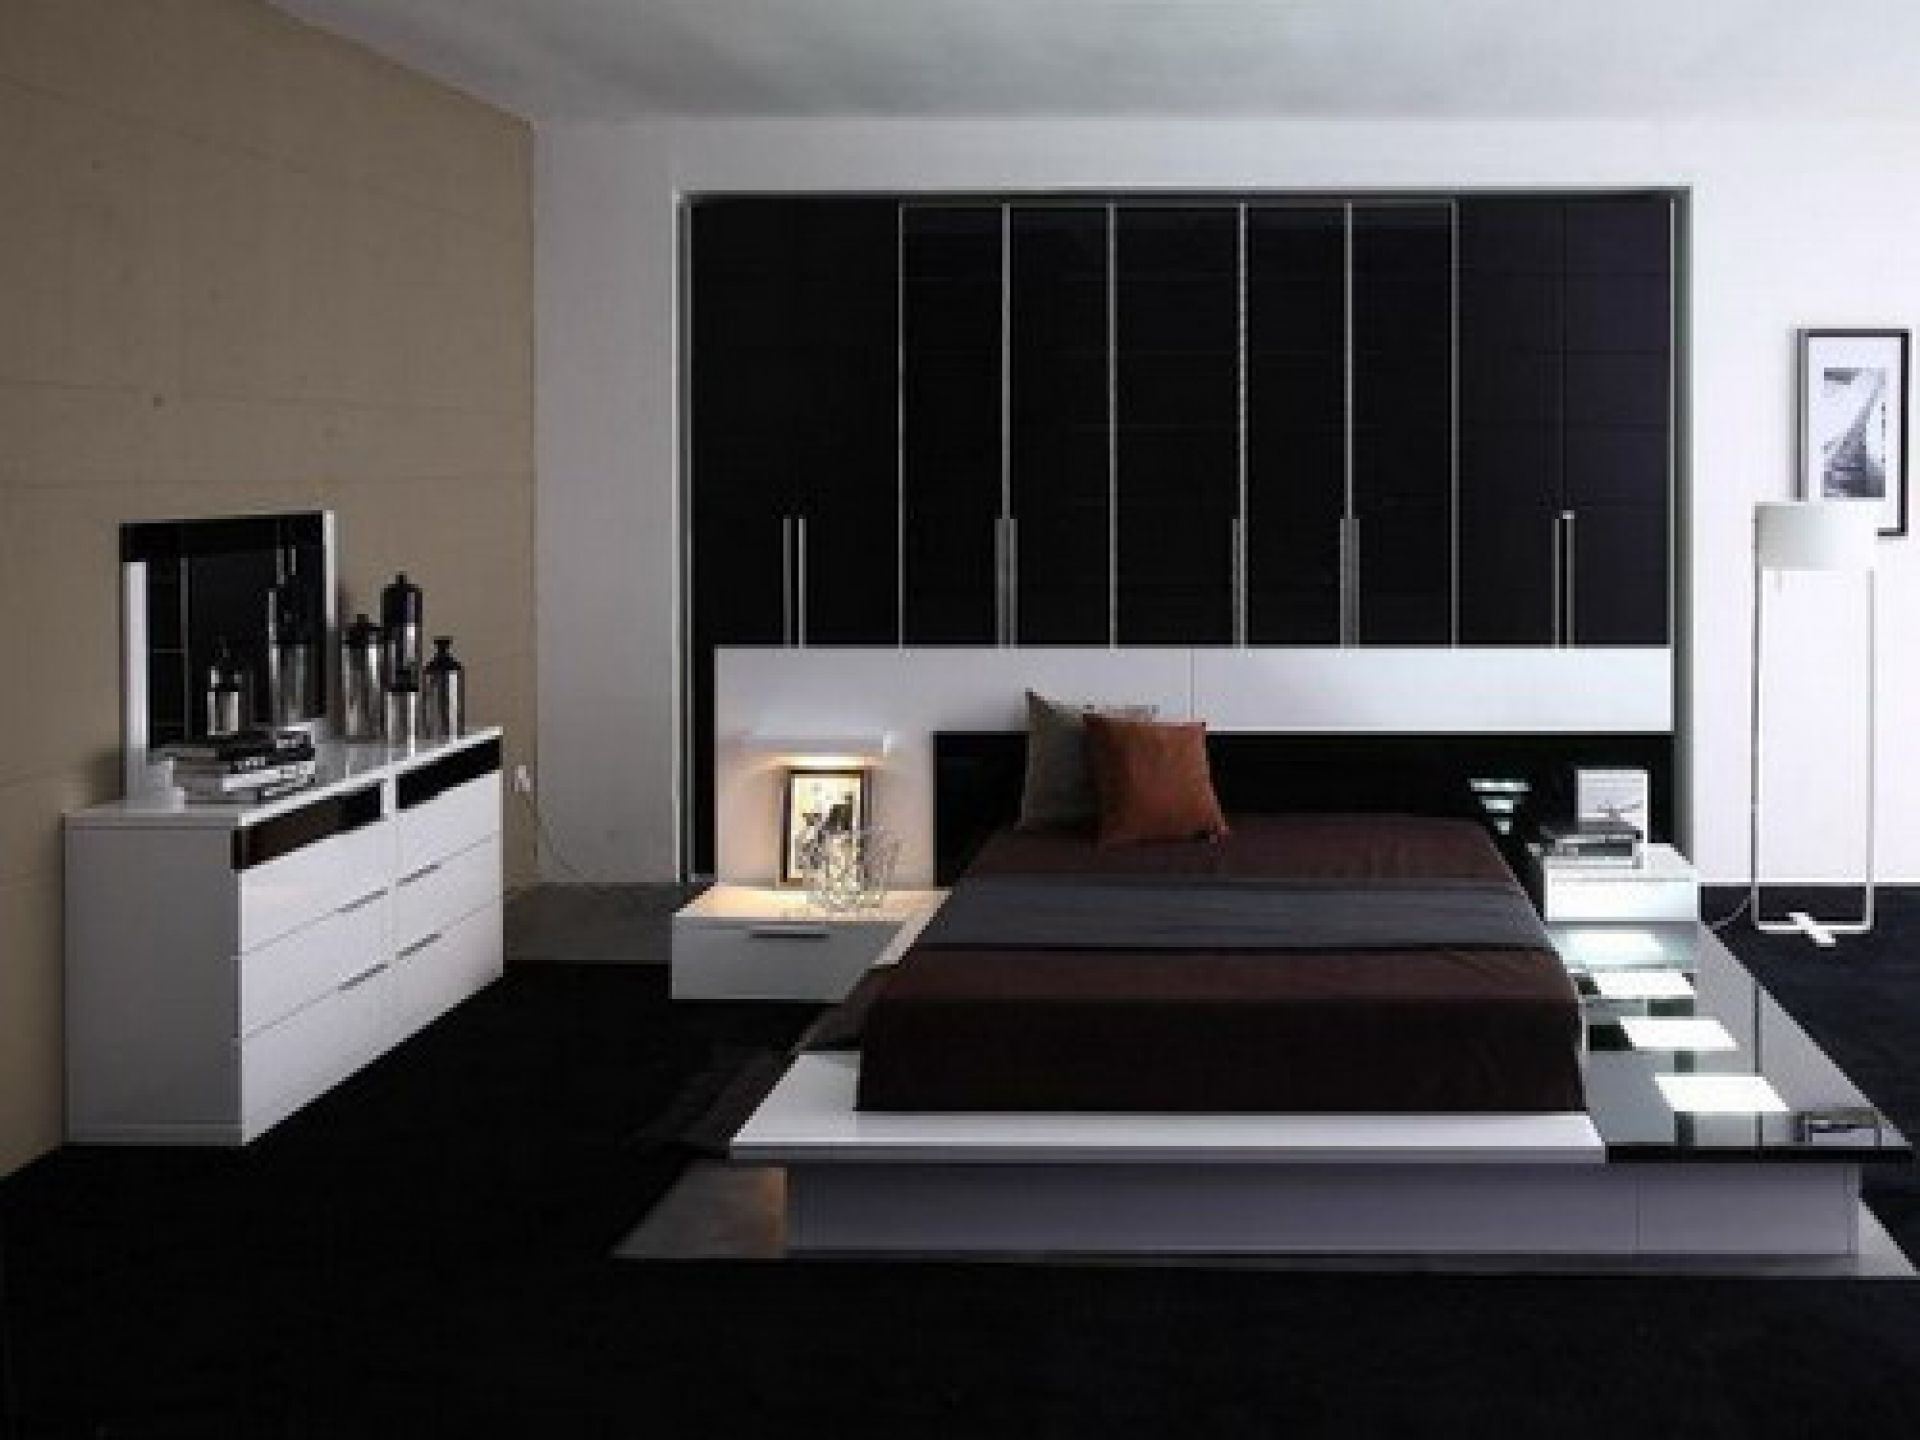 Modern bedding ideas with pictures - Modern Bedroom Design Ideas Decorating Ideas 1